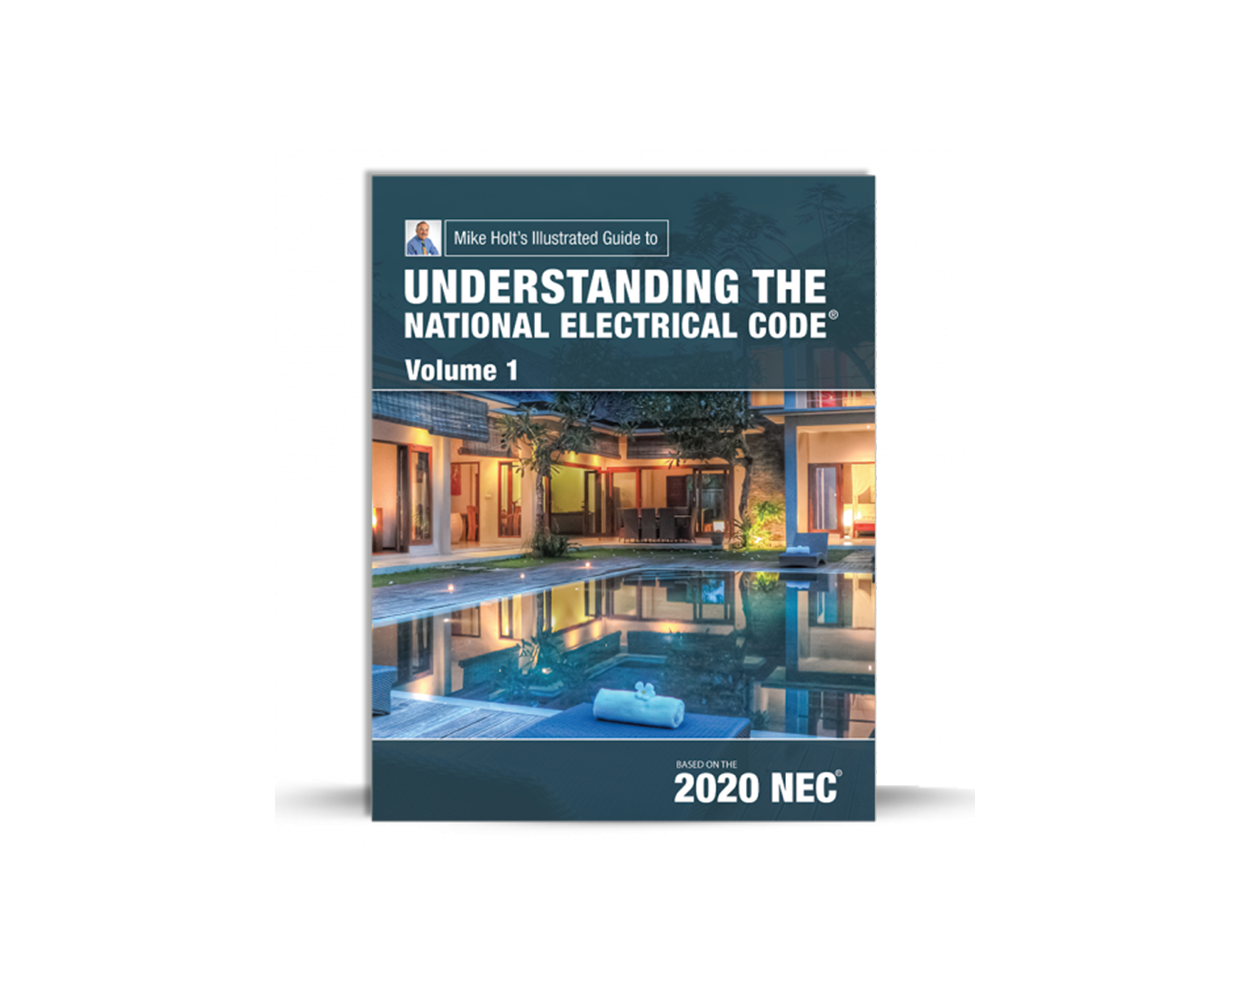 Understanding The National Electrical Code Vol 1 Textbook 2020 Nec